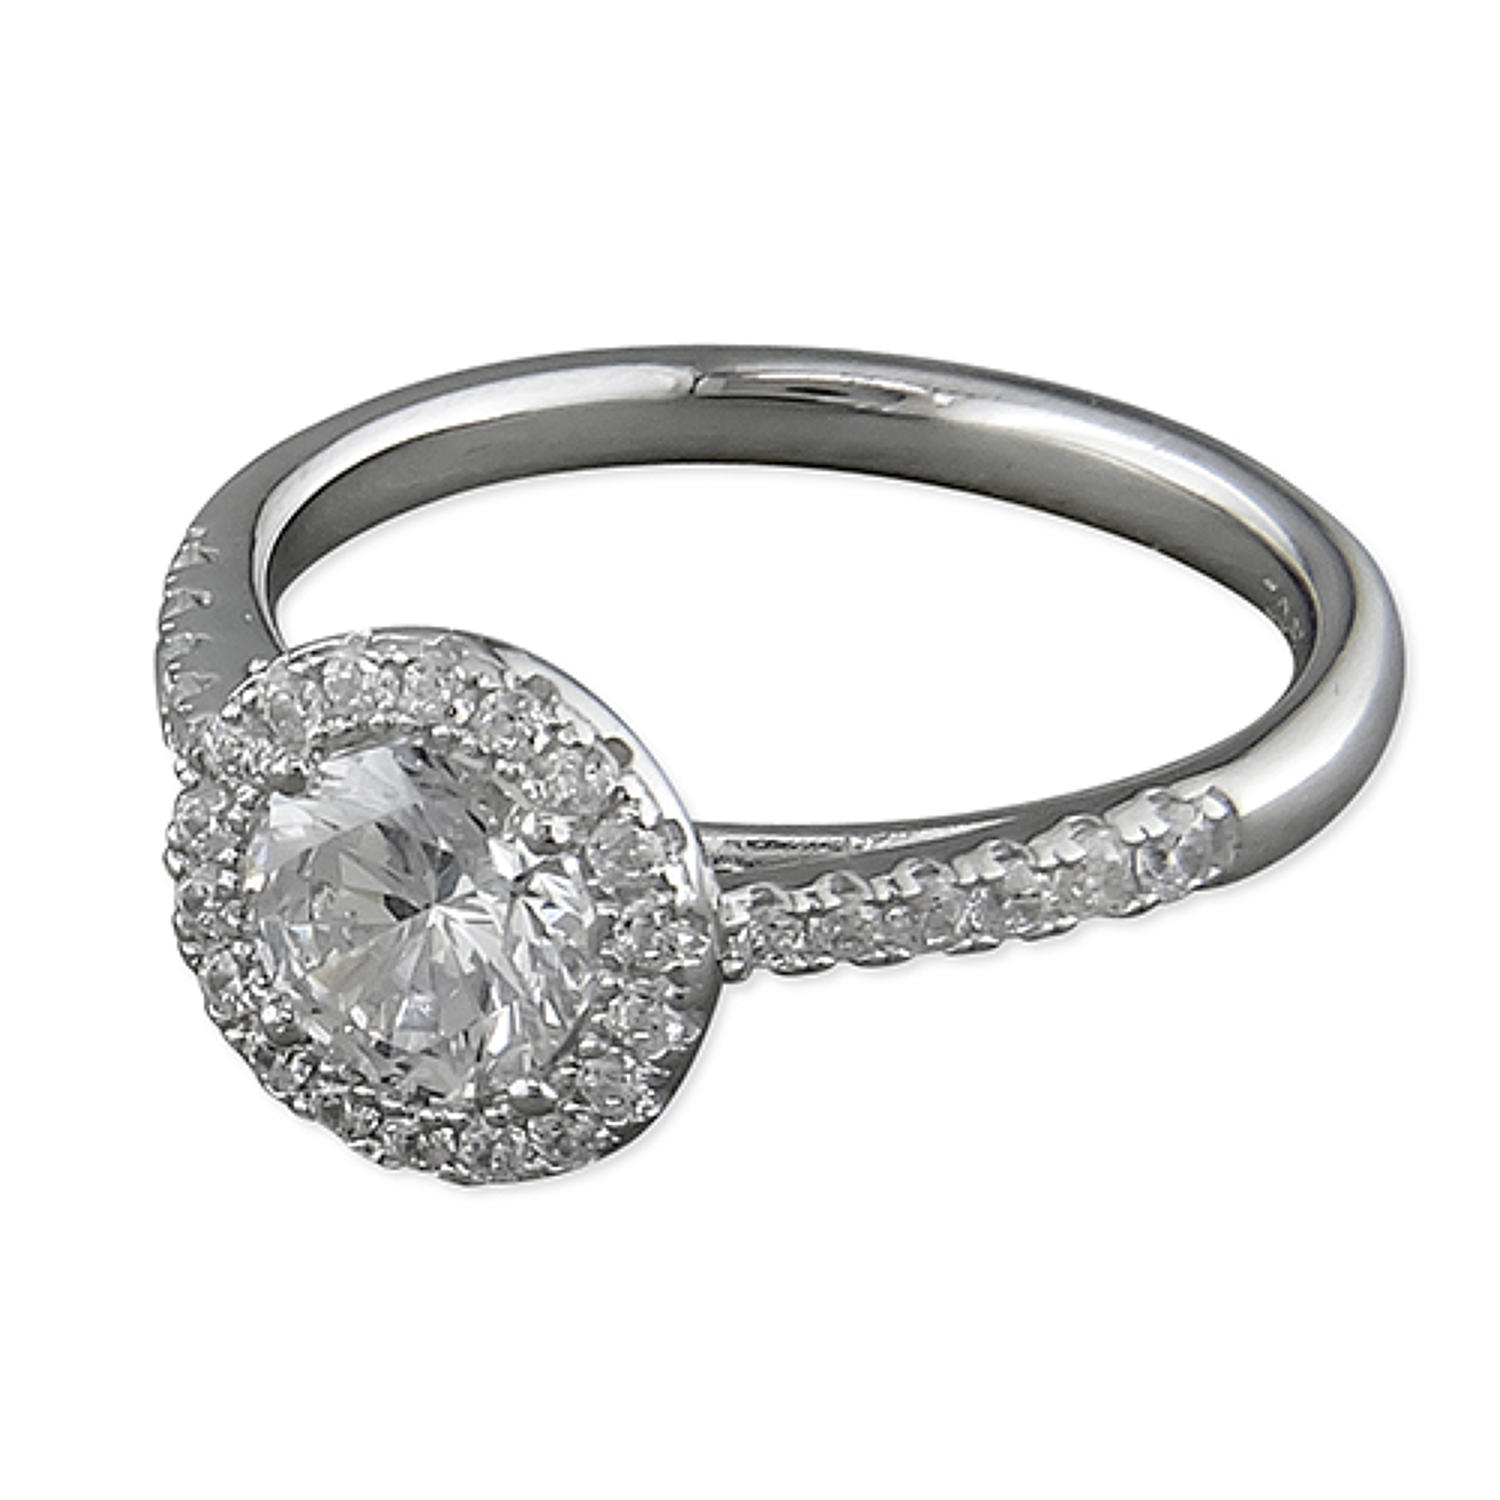 Sterling Silver Cz Round Cluster Ring with Cz Set Shoulders